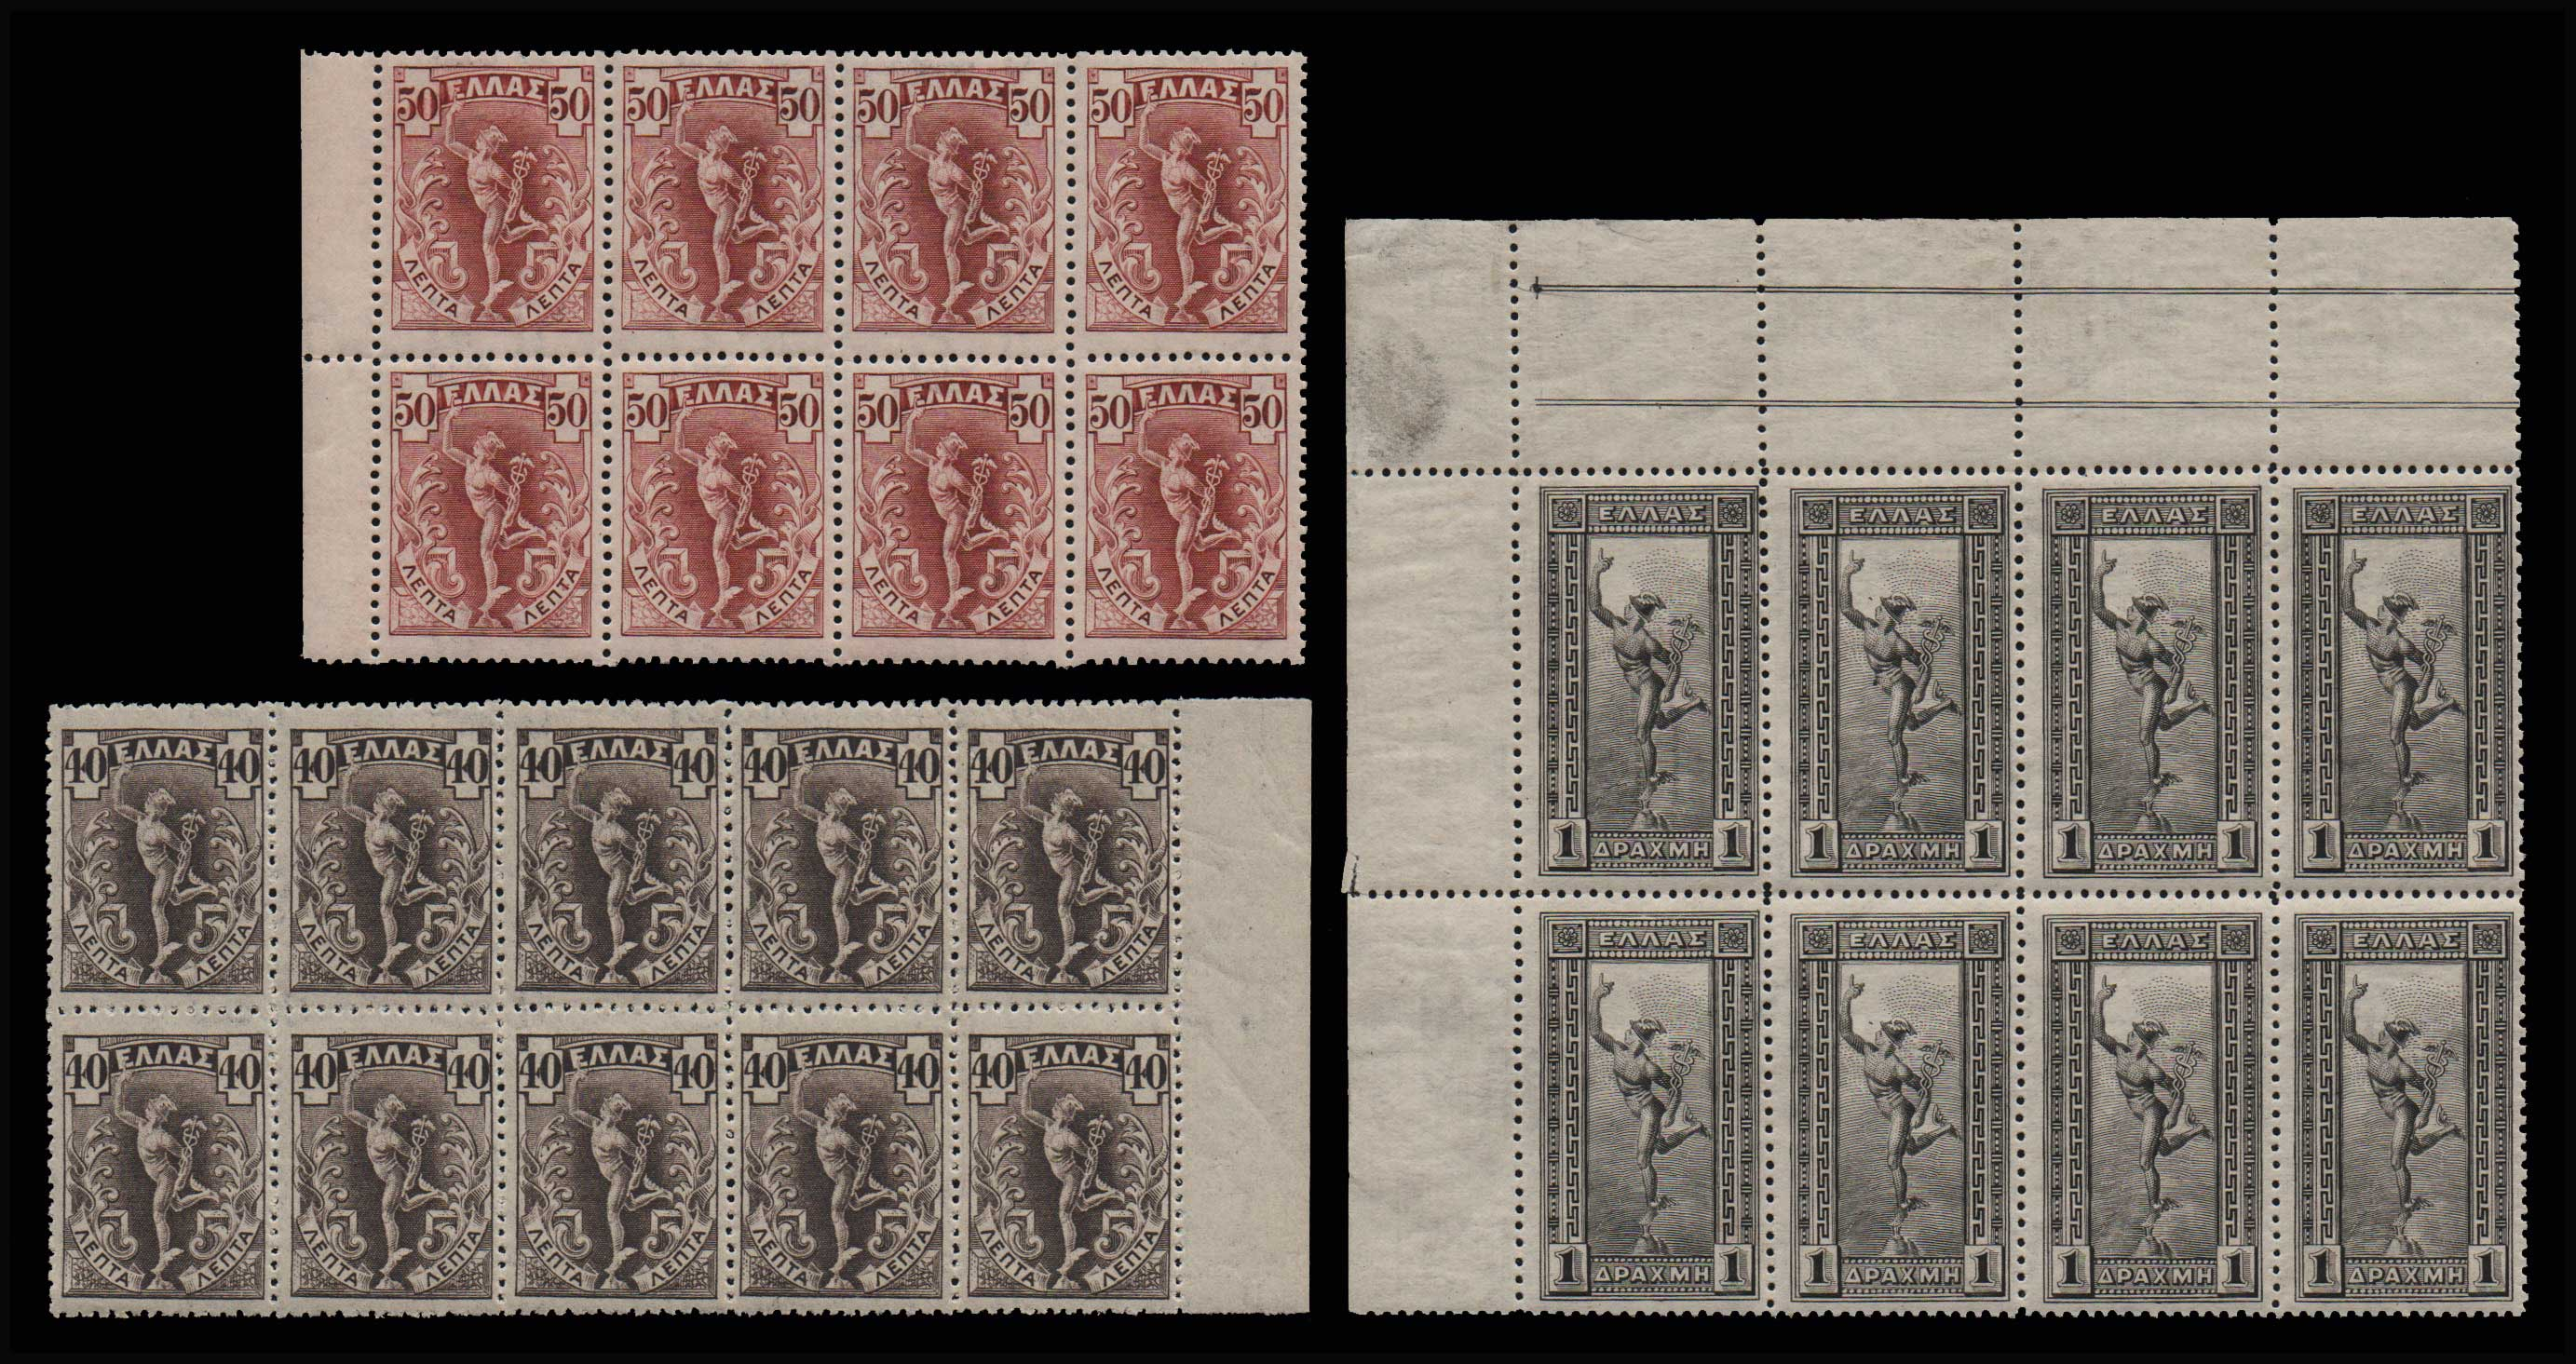 Lot 545 - -  1901/02 FLYING MERCURY & A.M. 1901/02 FLYING MERCURY & A.M. -  Athens Auctions Public Auction 90 General Stamp Sale